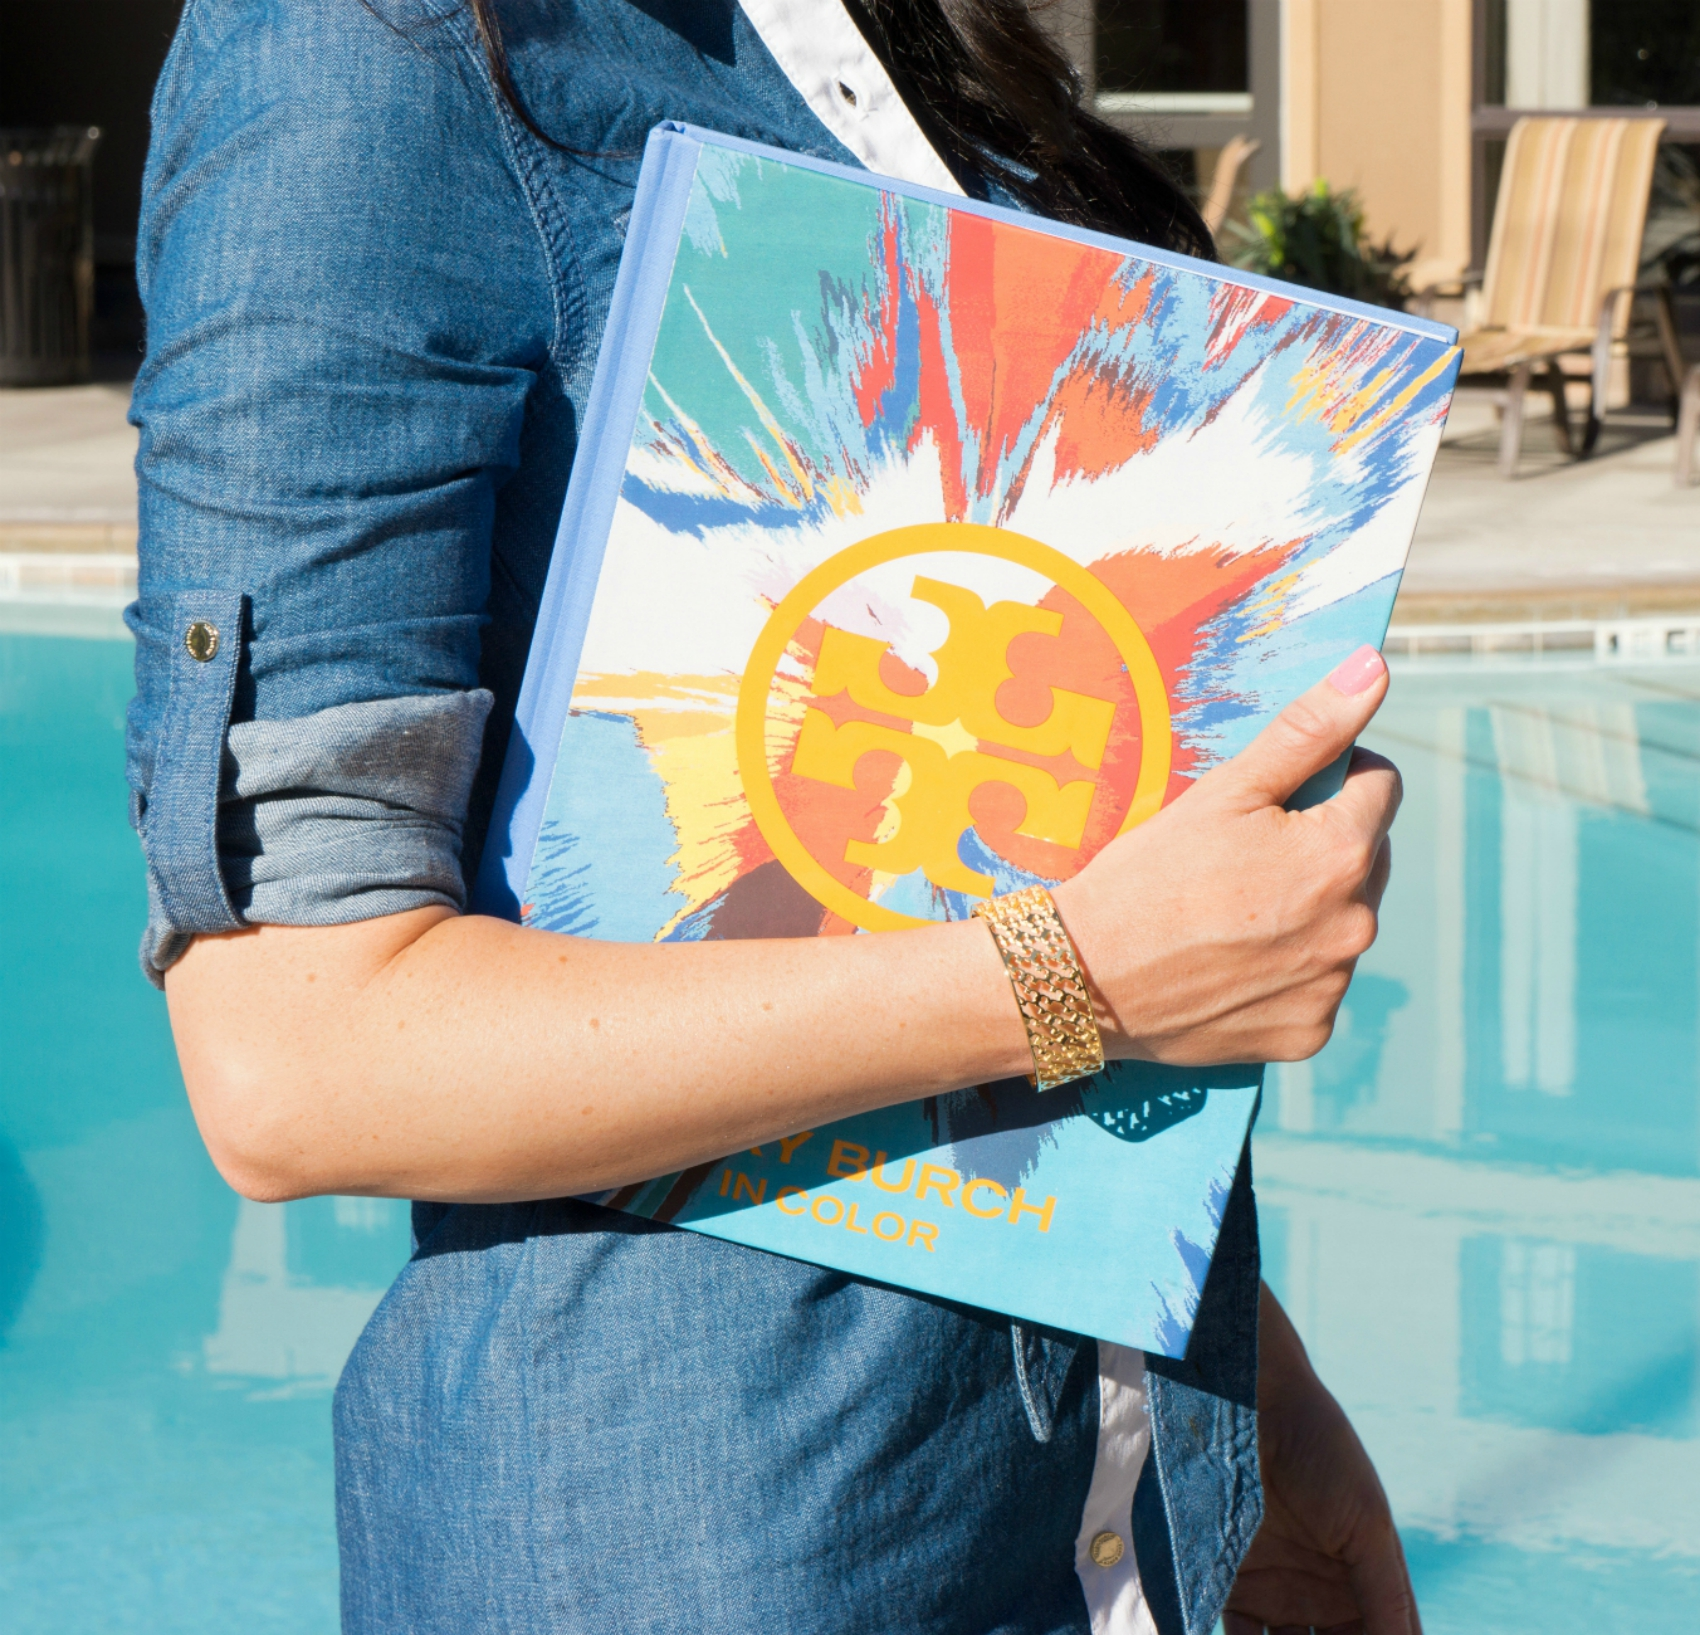 The Sugared Lemon Tory Burch In Color book